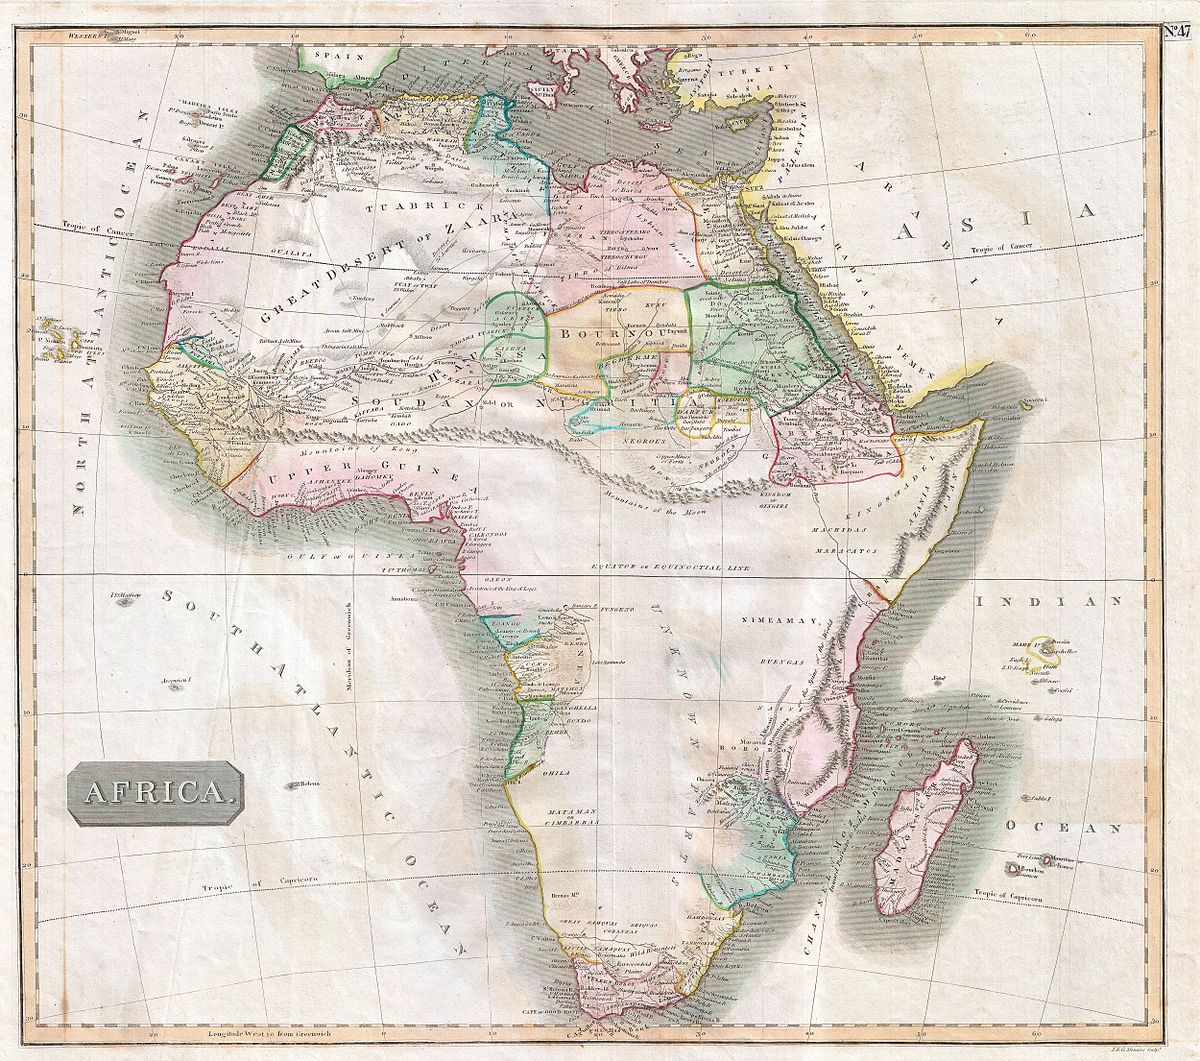 European Exploration Of Africa Wikipedia - Portugal map wikipedia